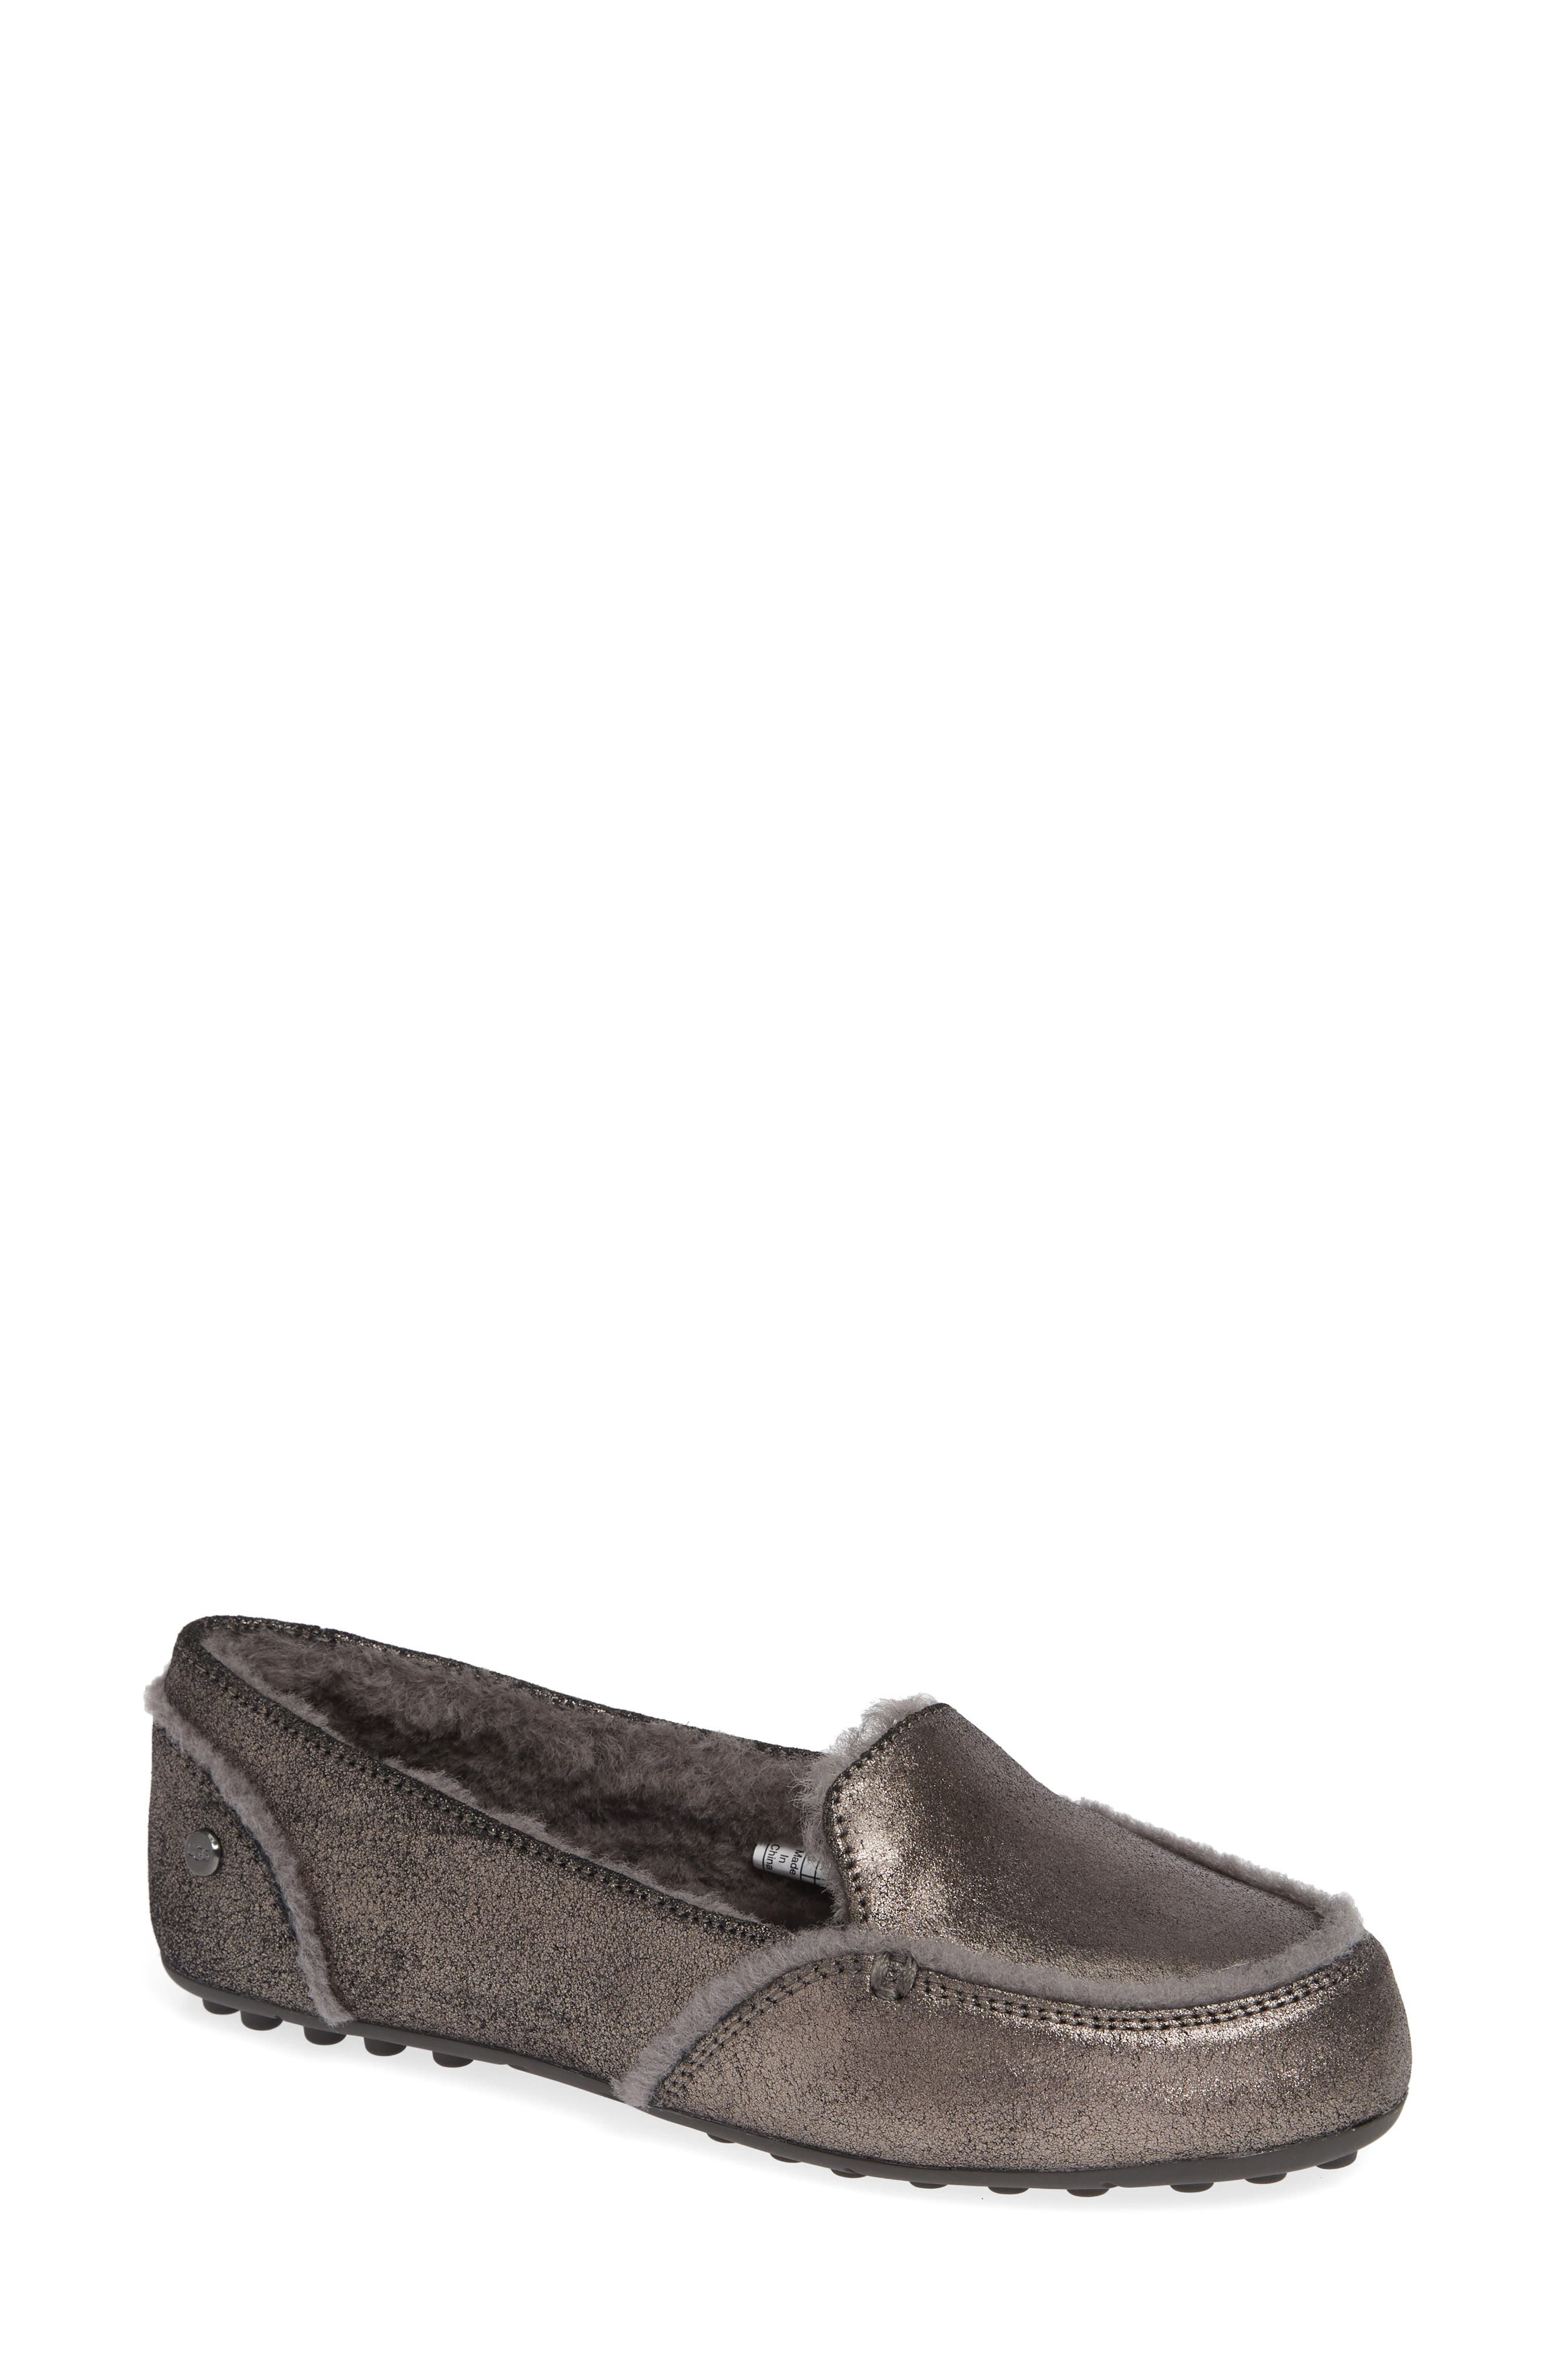 Hailey Metallic Slipper,                         Main,                         color, GUNMETAL